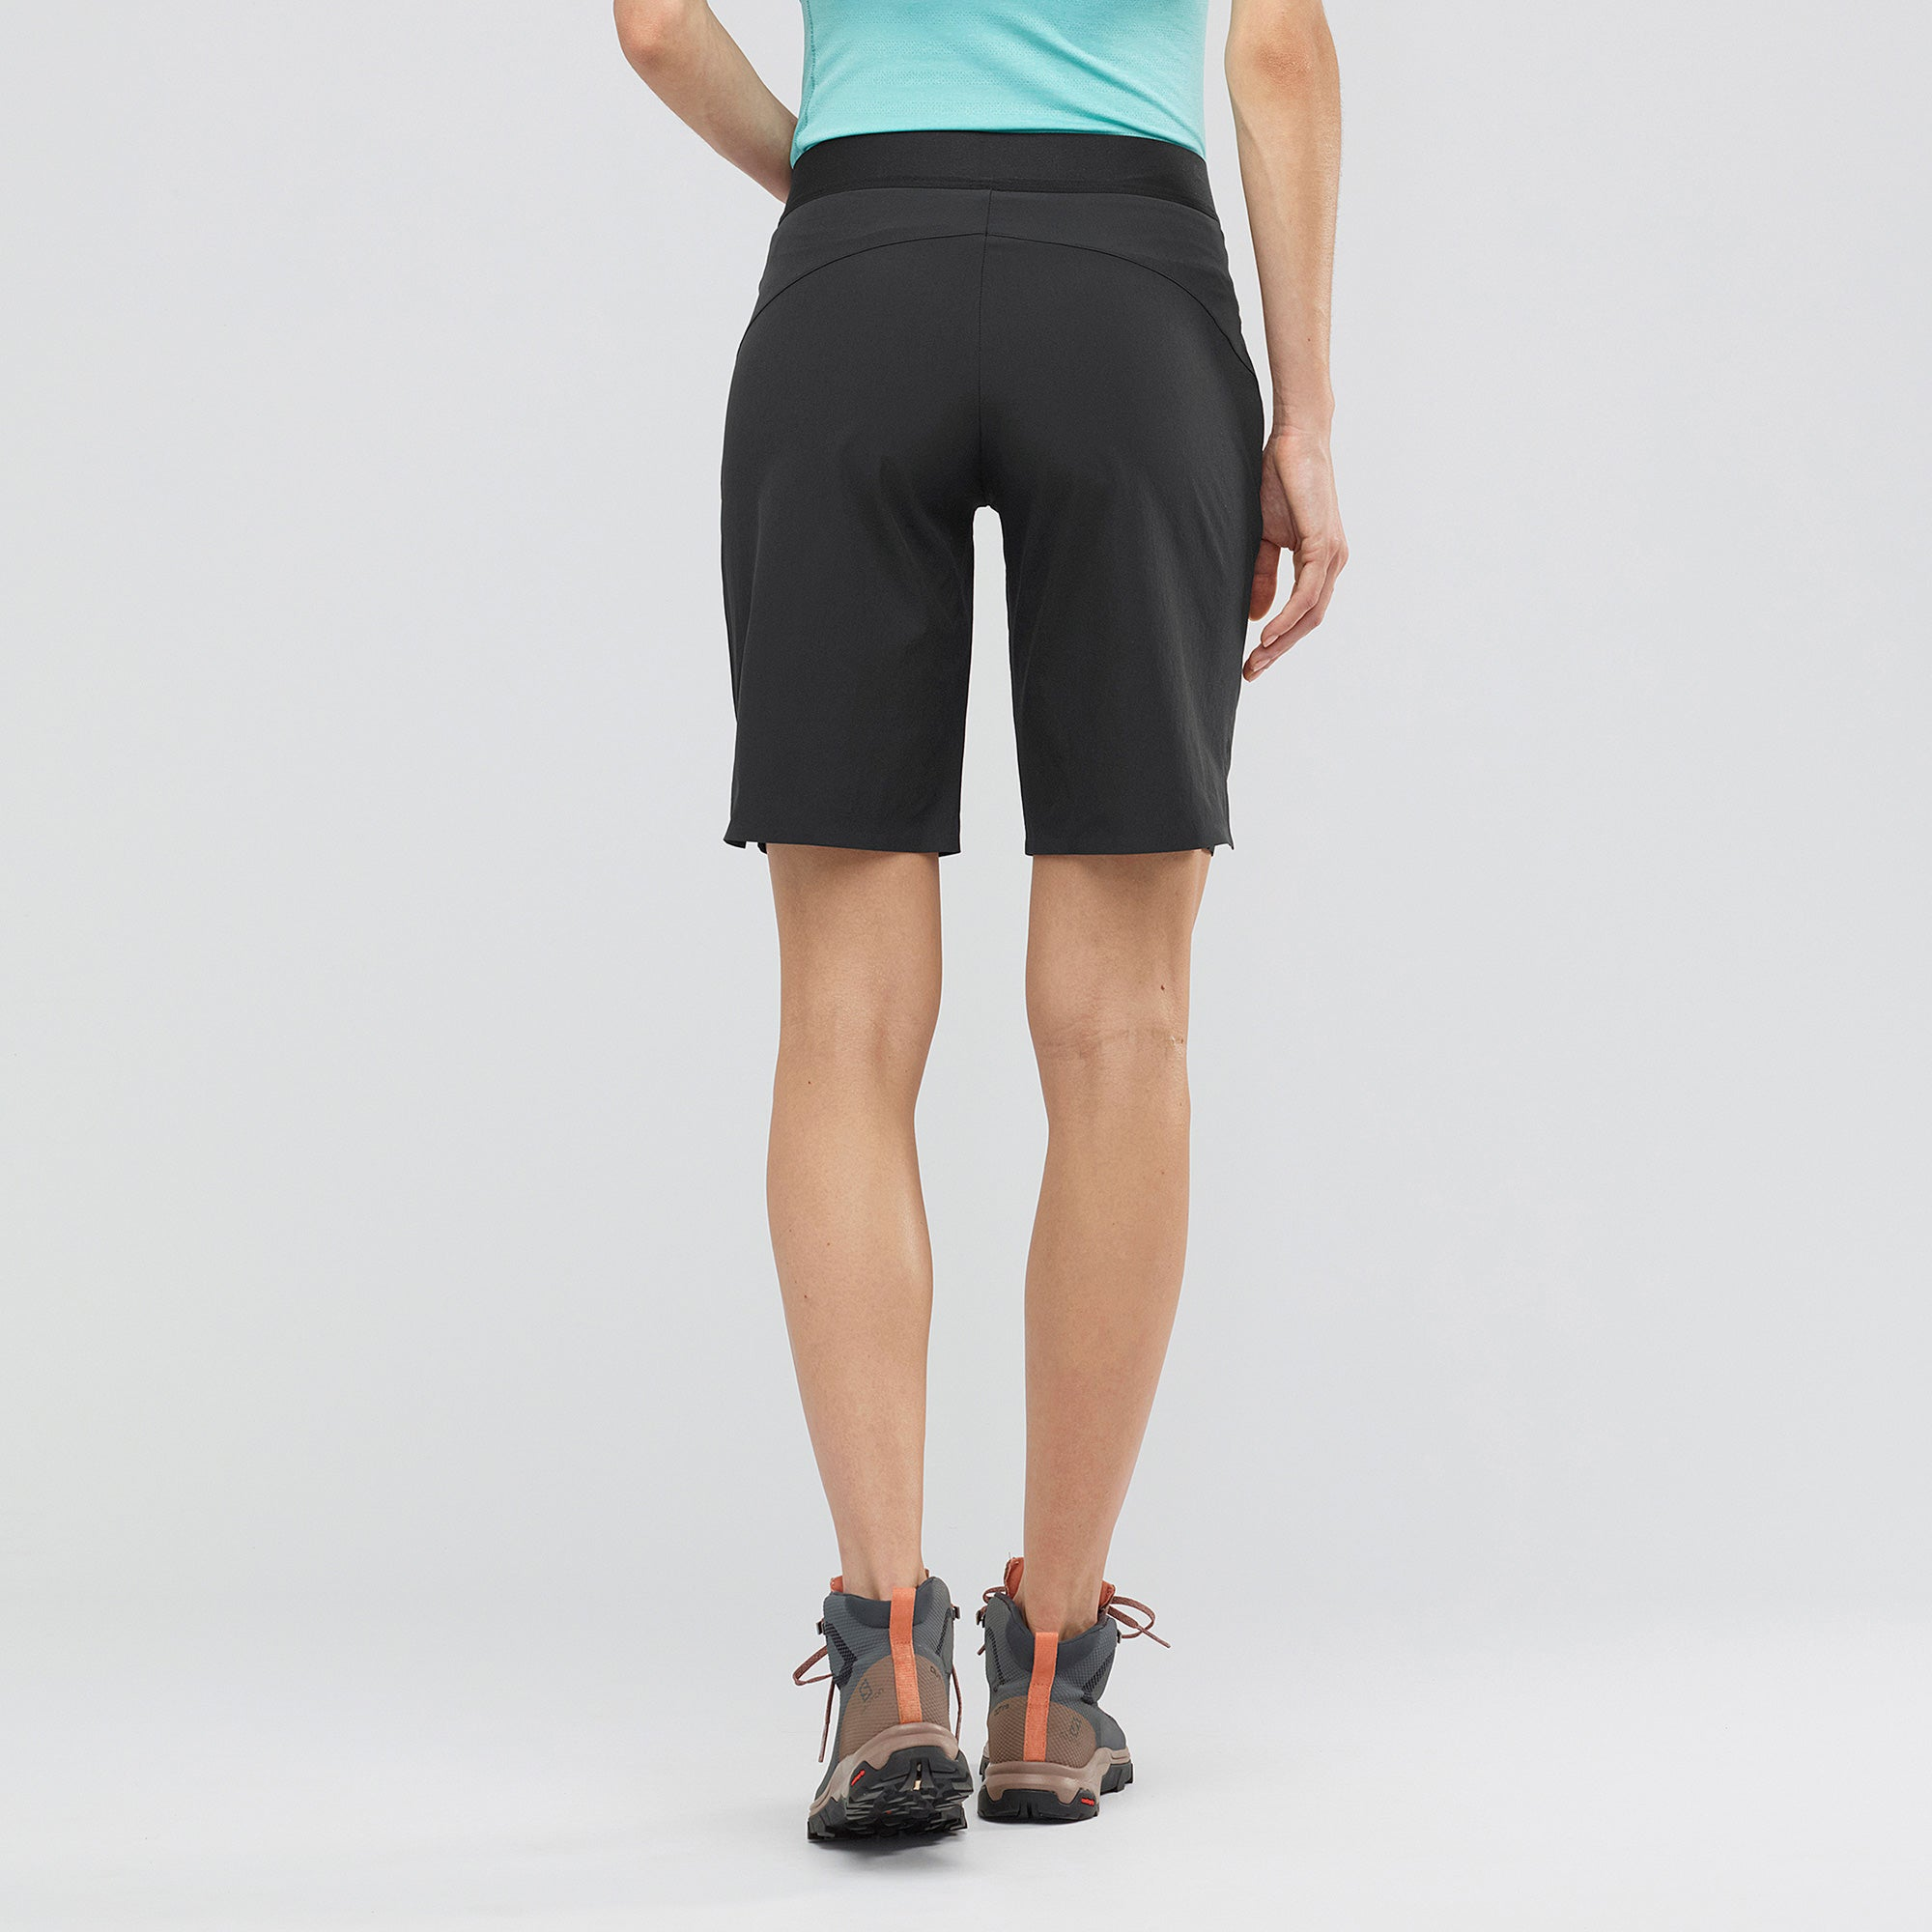 Salomon Wayfarer Pull On Shorts (Women's)